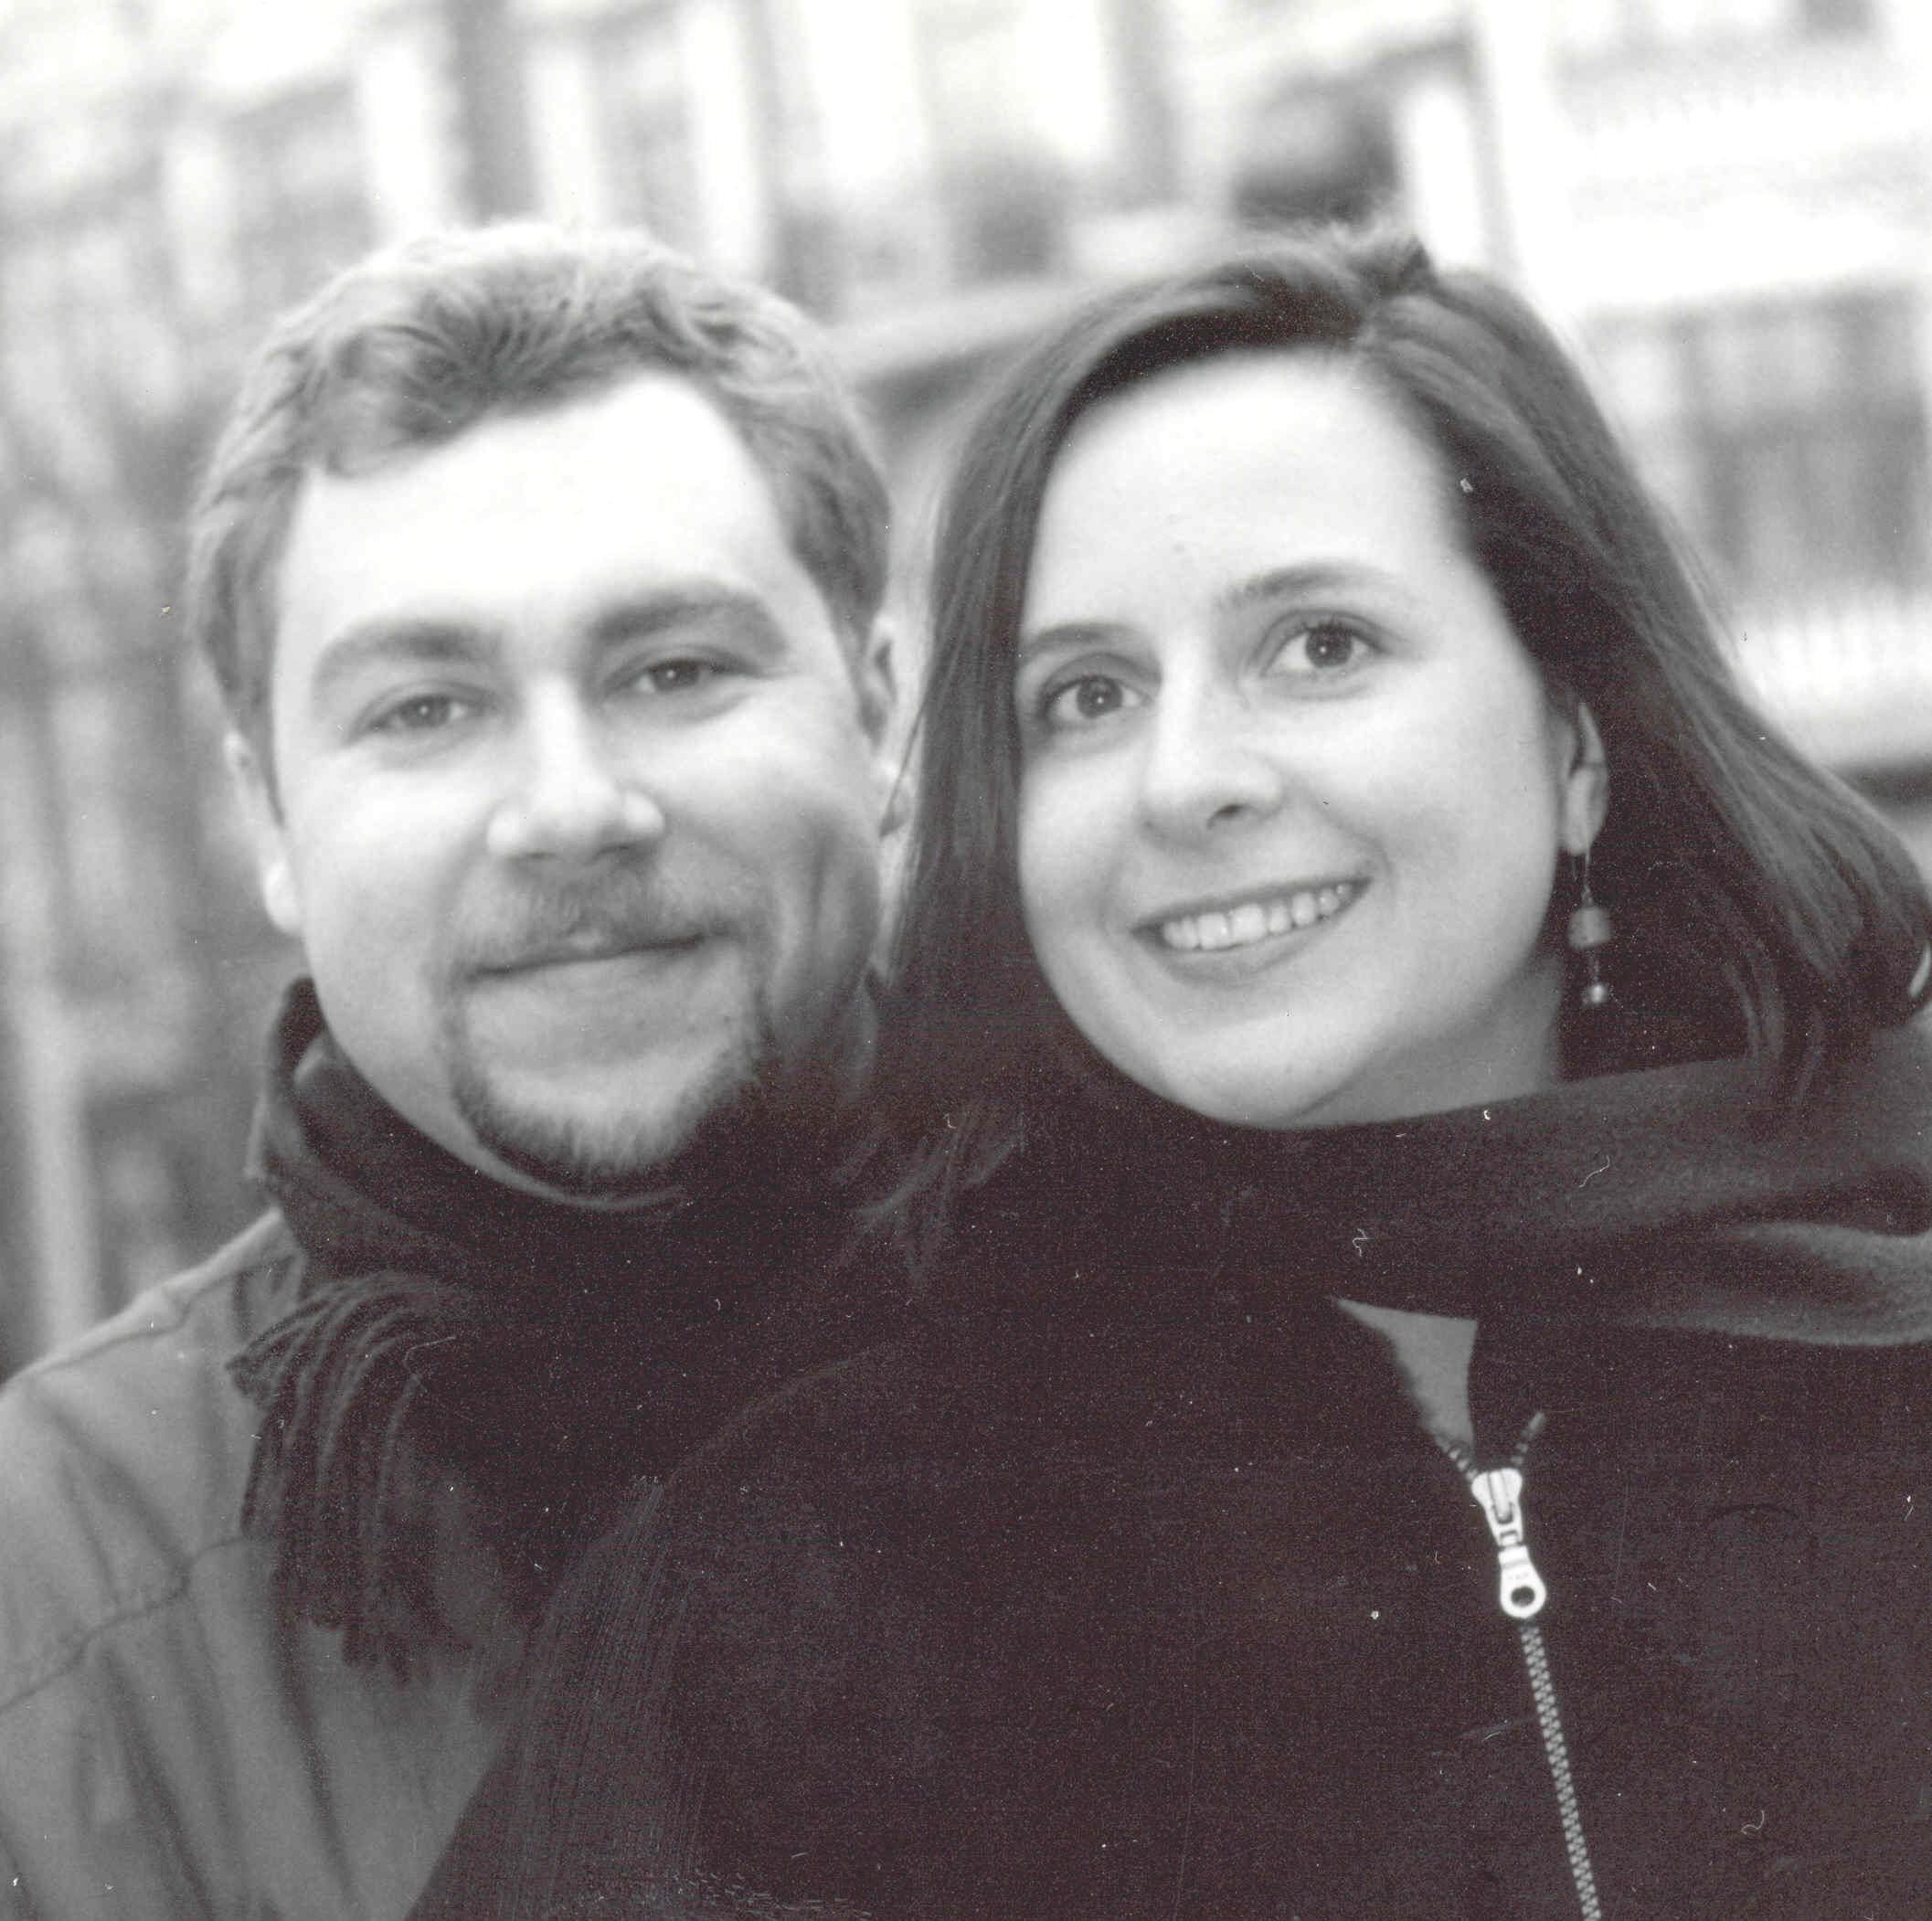 Dmitry koublitsky and Maureen francis